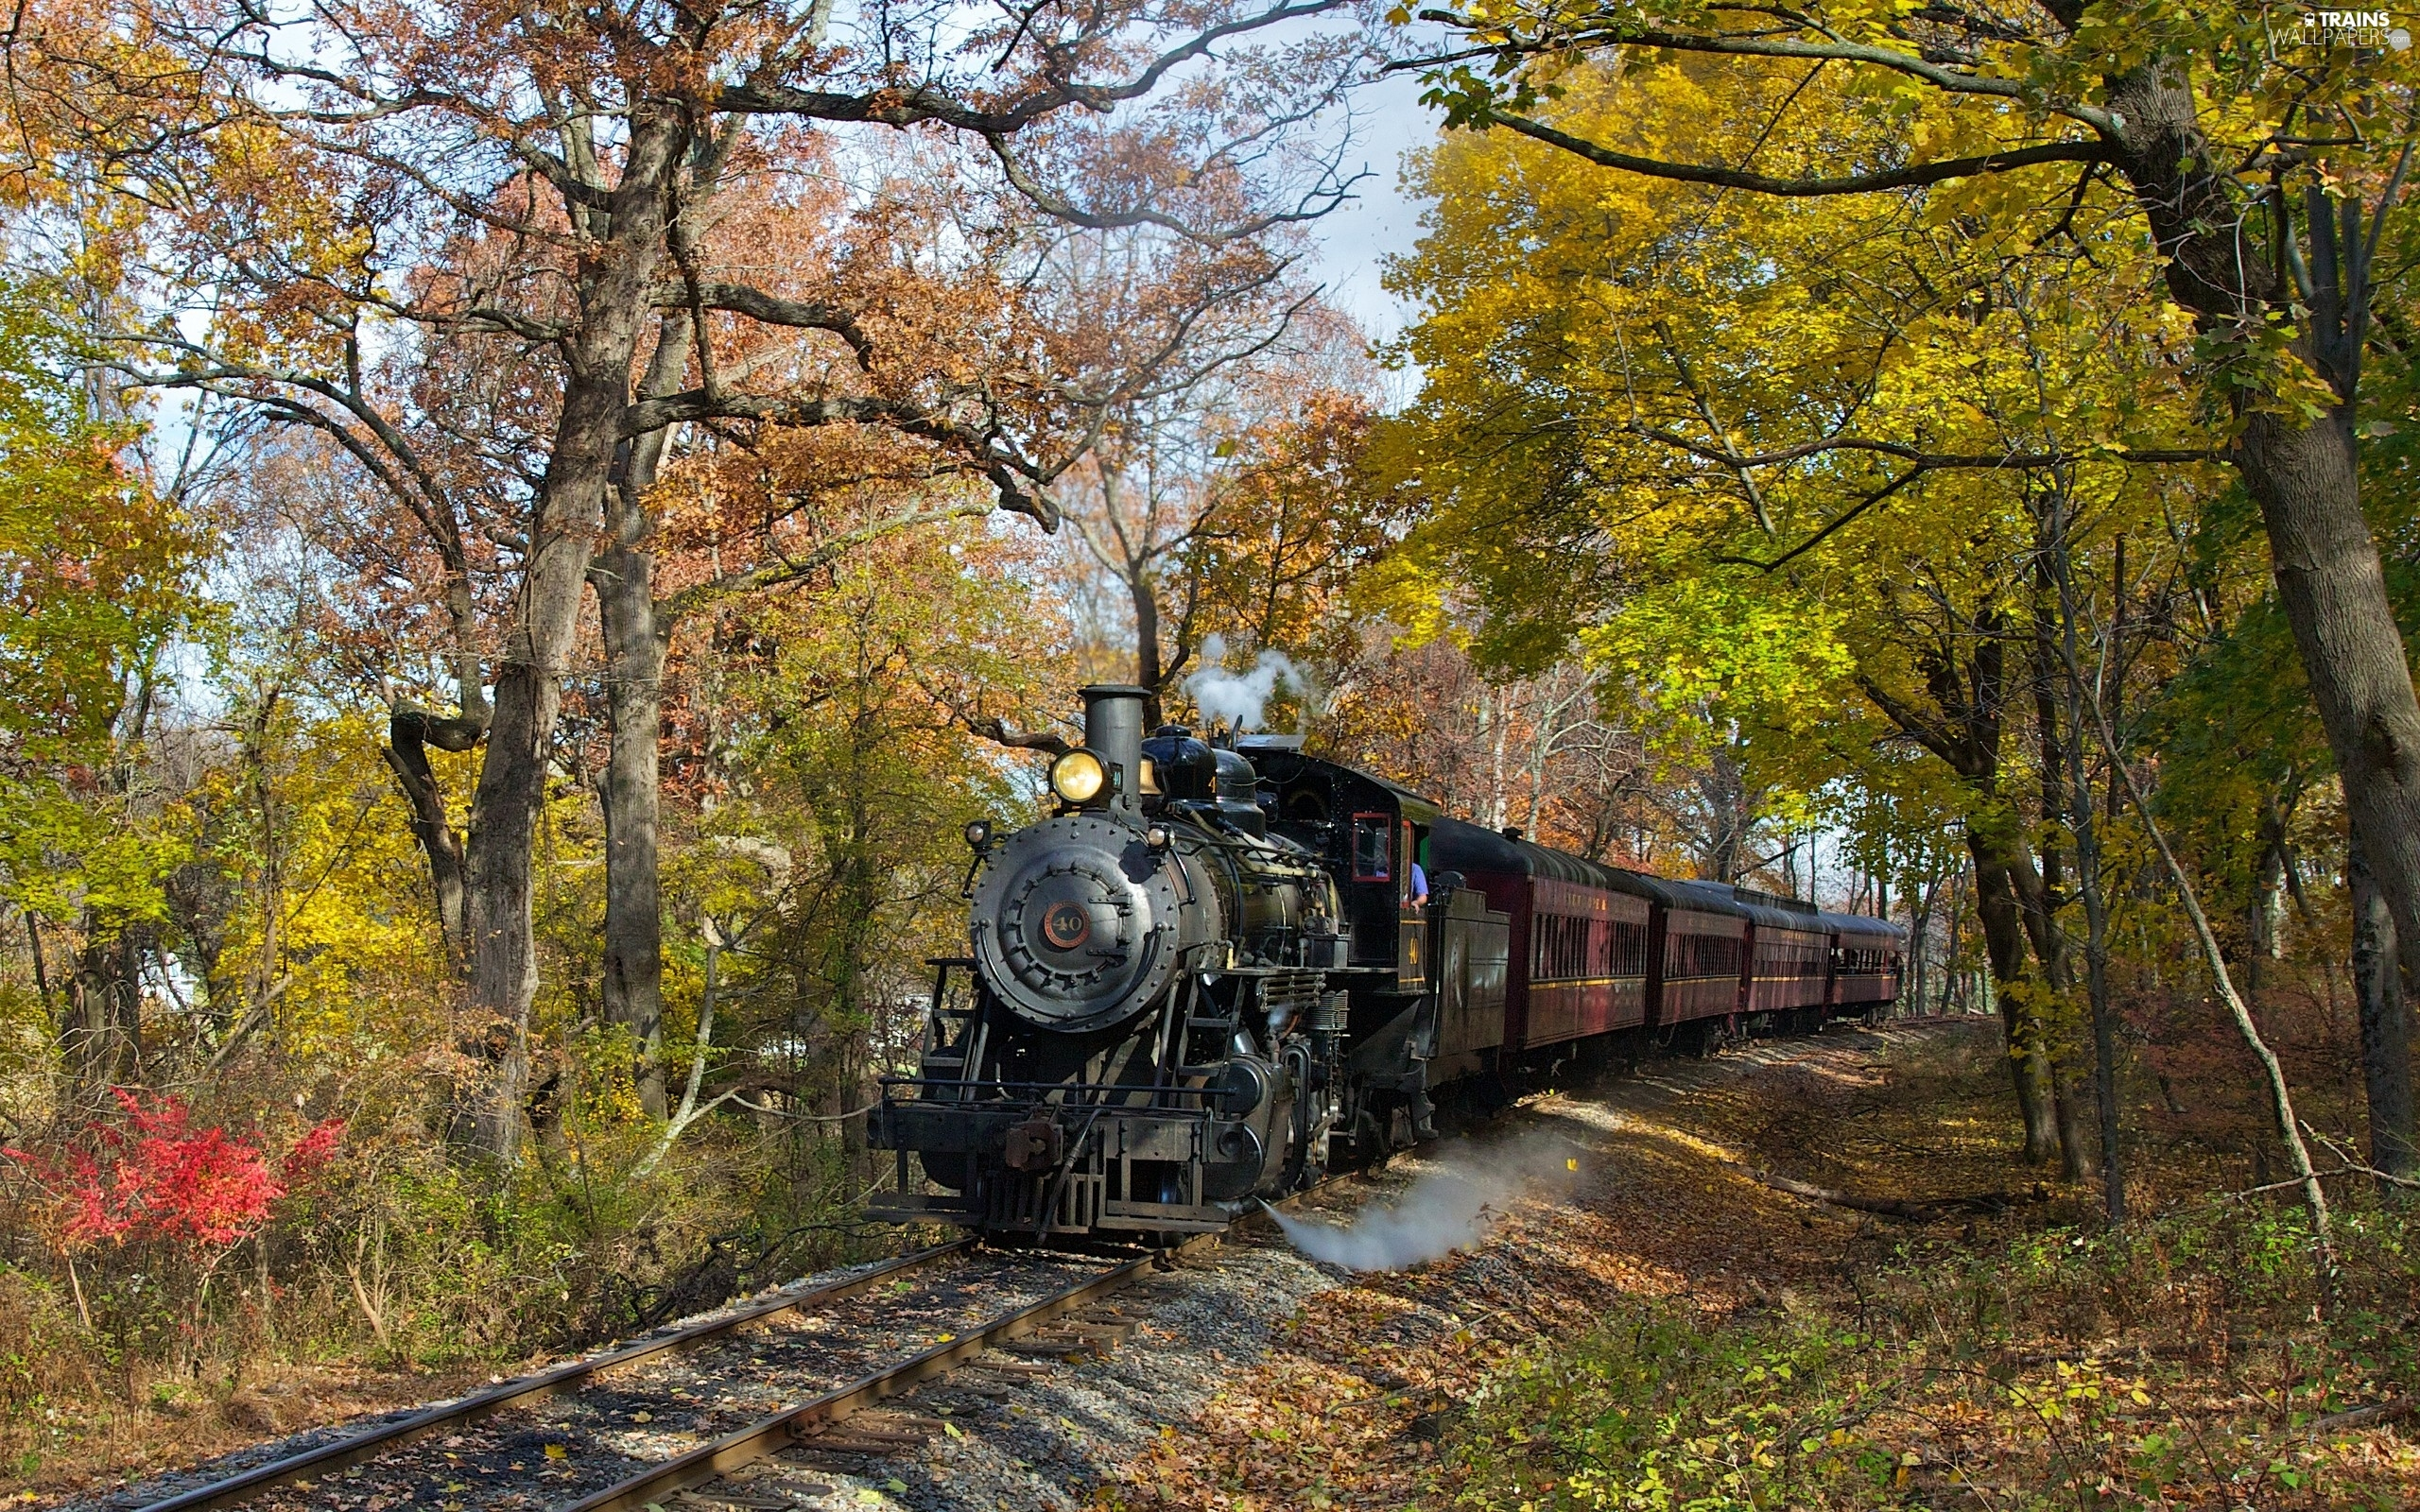 Wagons, locomotive, trees, viewes, track, steam